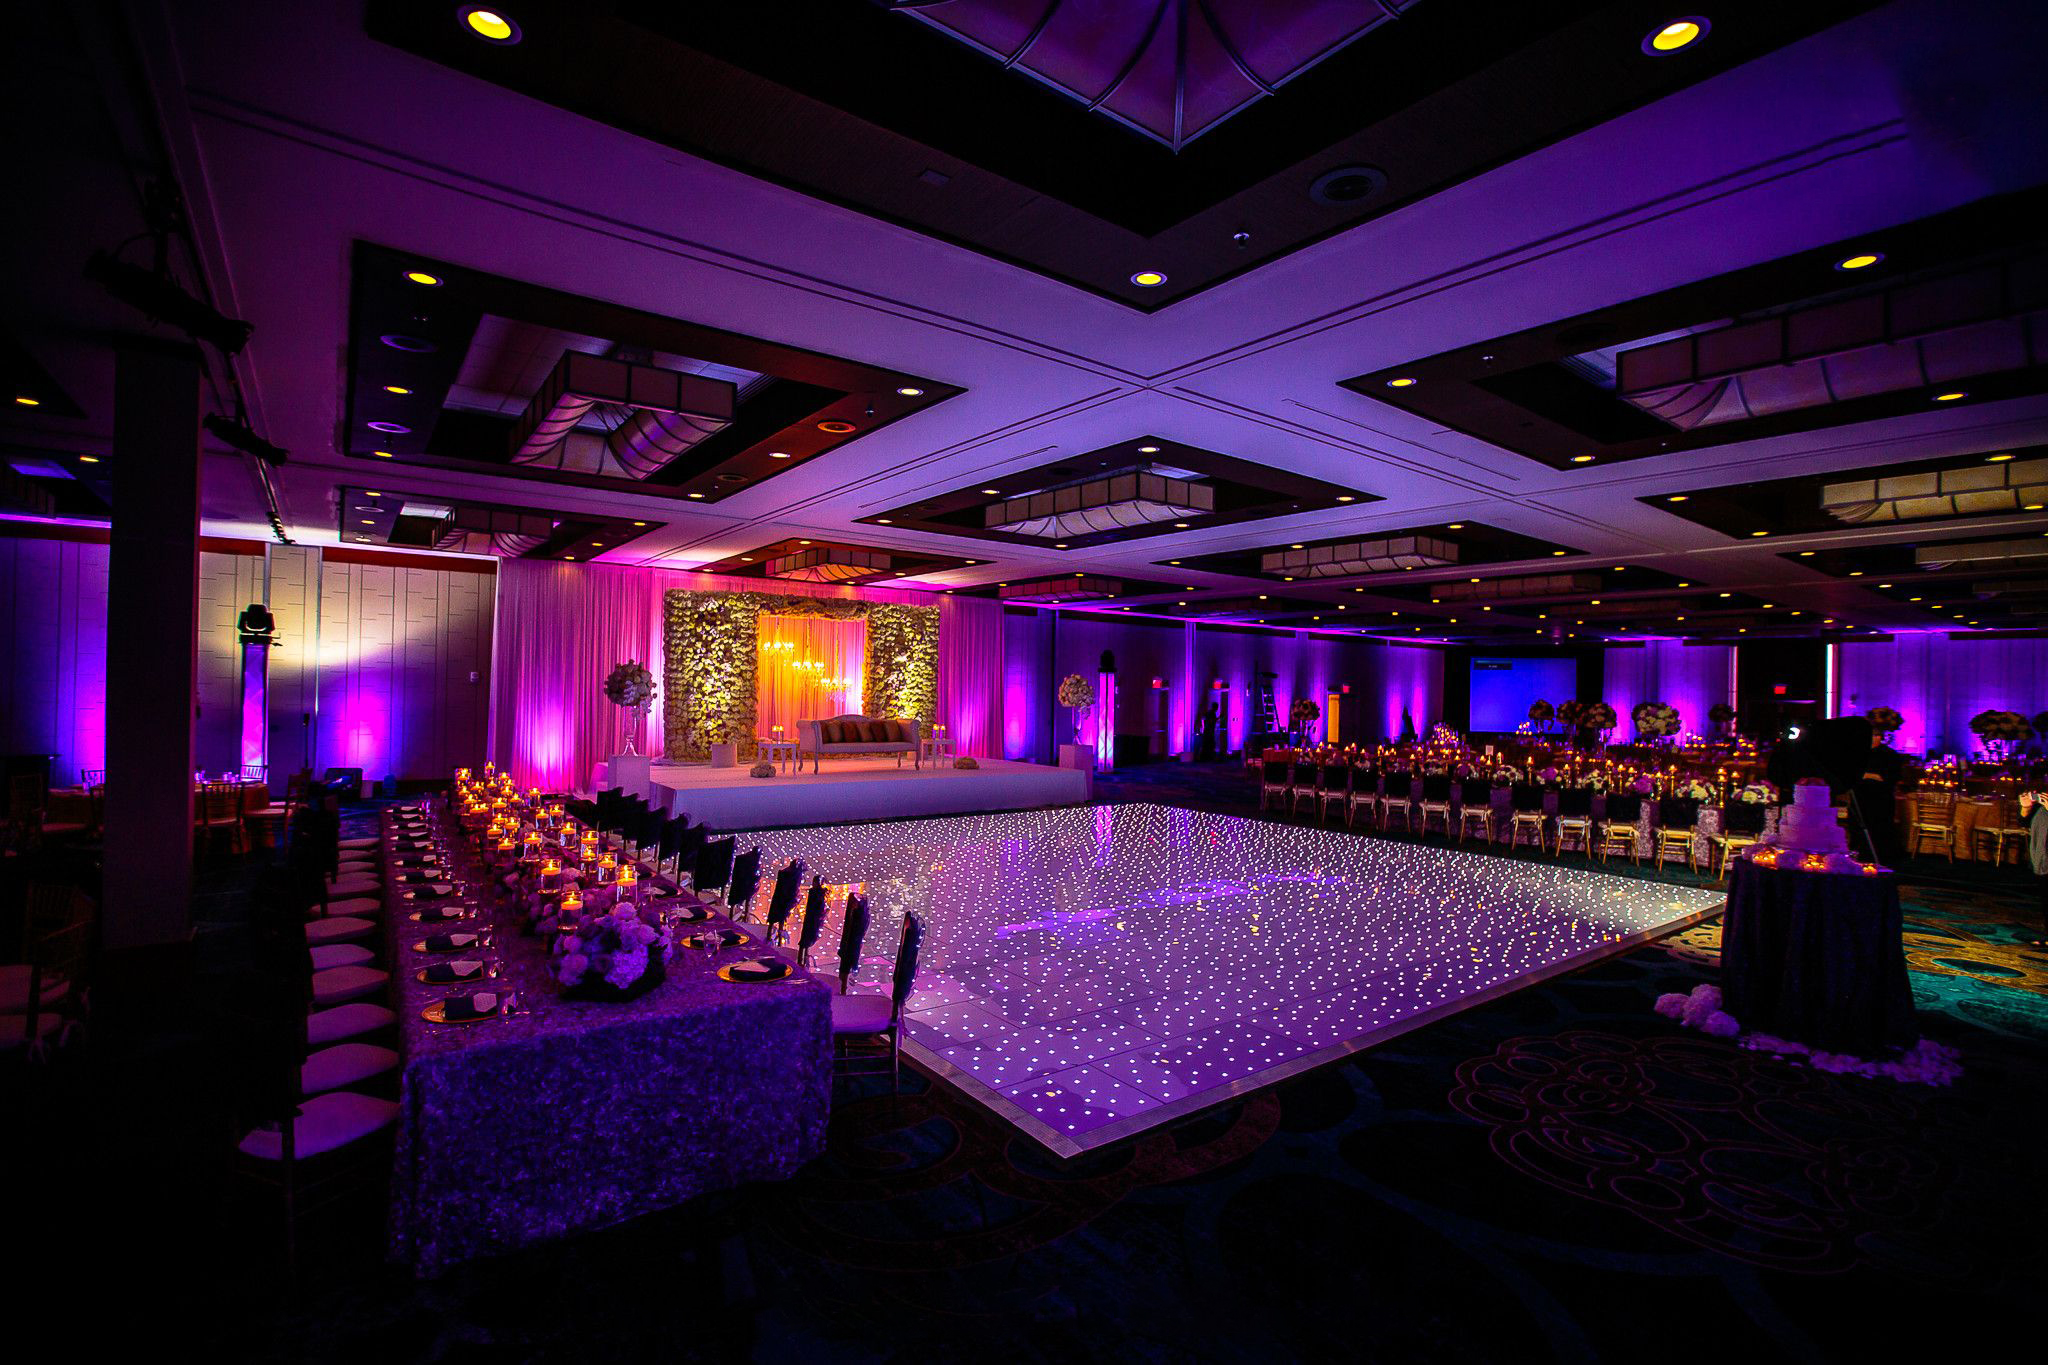 Amazing Dance Floors That Light up the Wedding